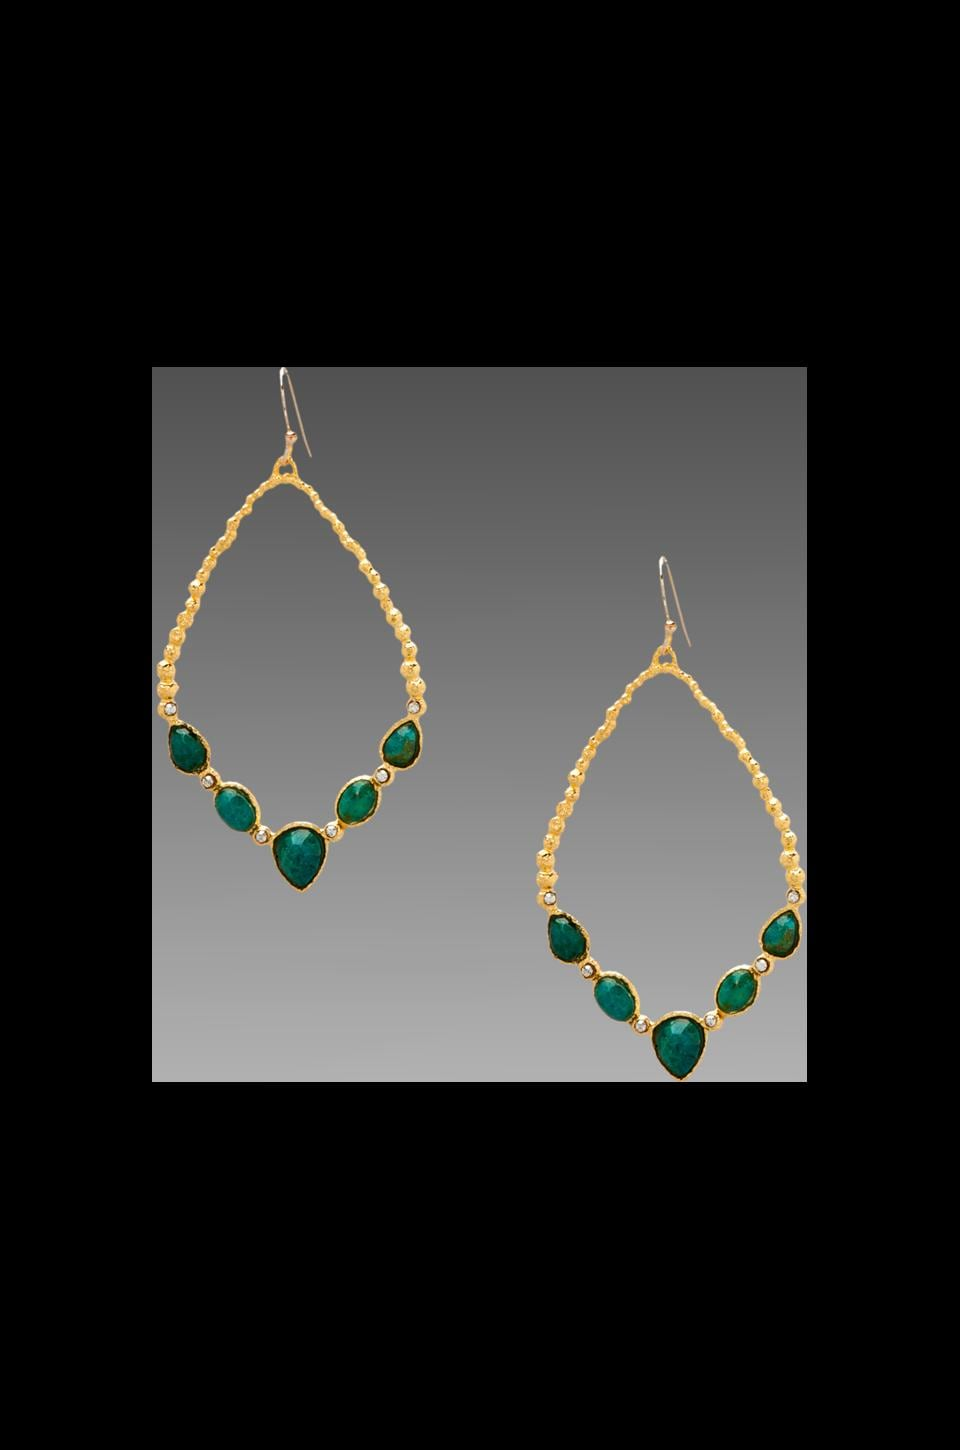 Alexis Bittar Cordova Gold Small Chrysocolla Tear Link Earring